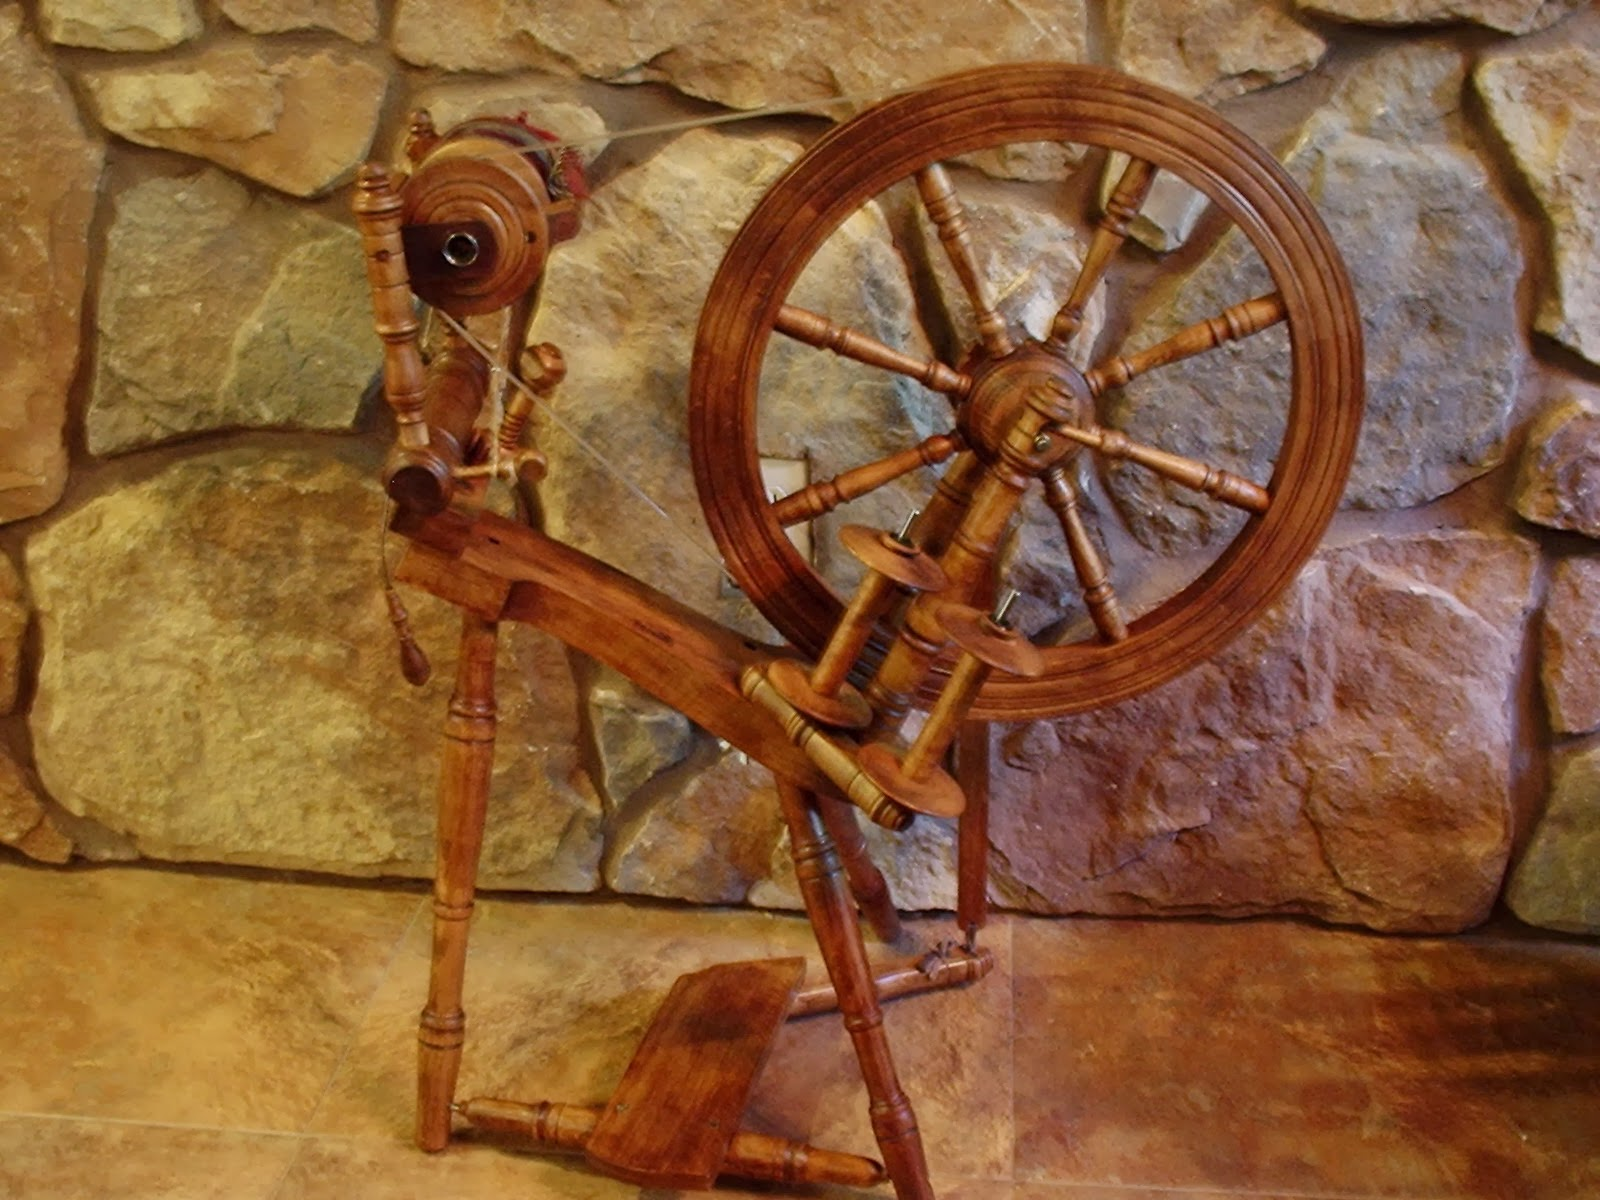 My spinning wheel, Kromski Prelude Spinning Wheel